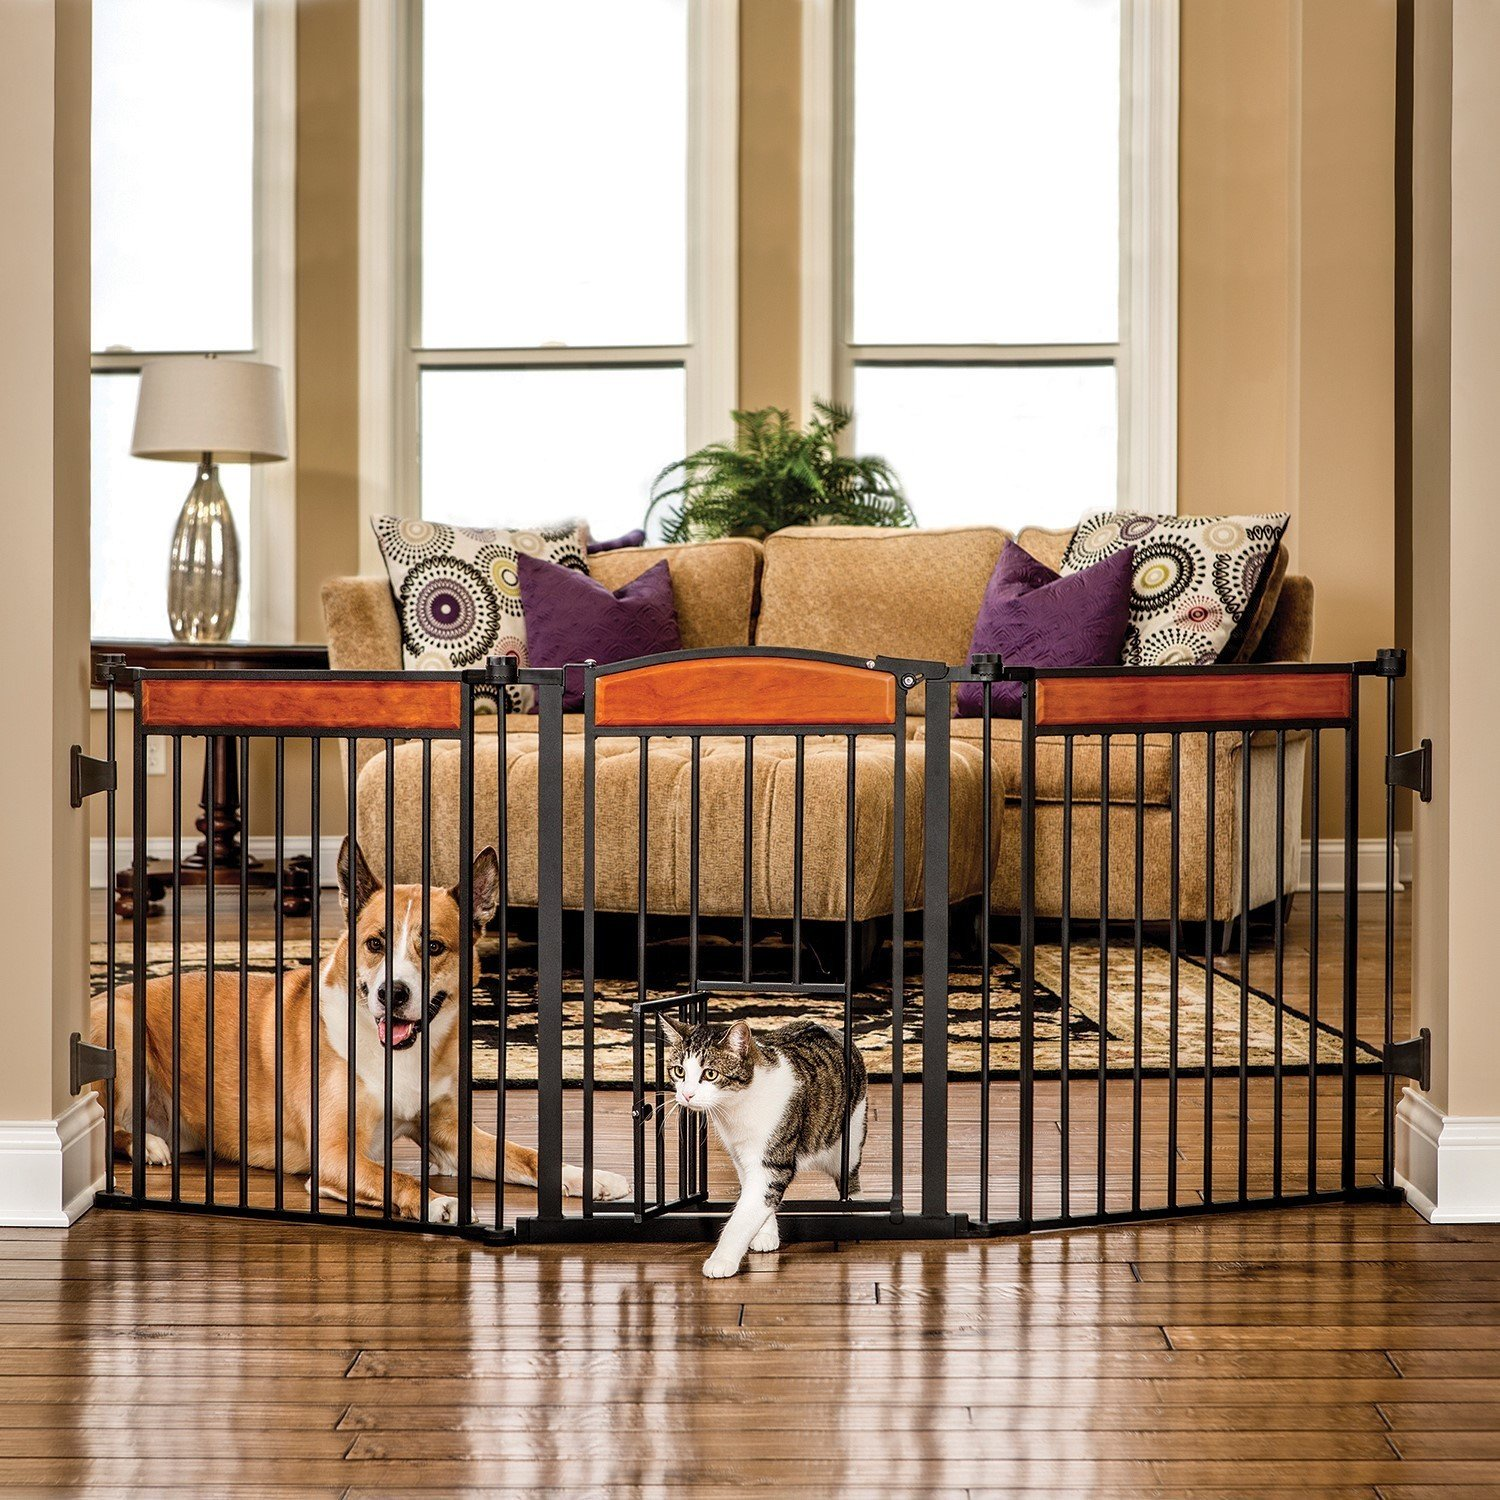 Sturdy, Durable Reliable Easy Set Up, Care And Store Paw Arched Flexi Pet Gate BLACK - Great For Keeping Small Children And Pets Safe!